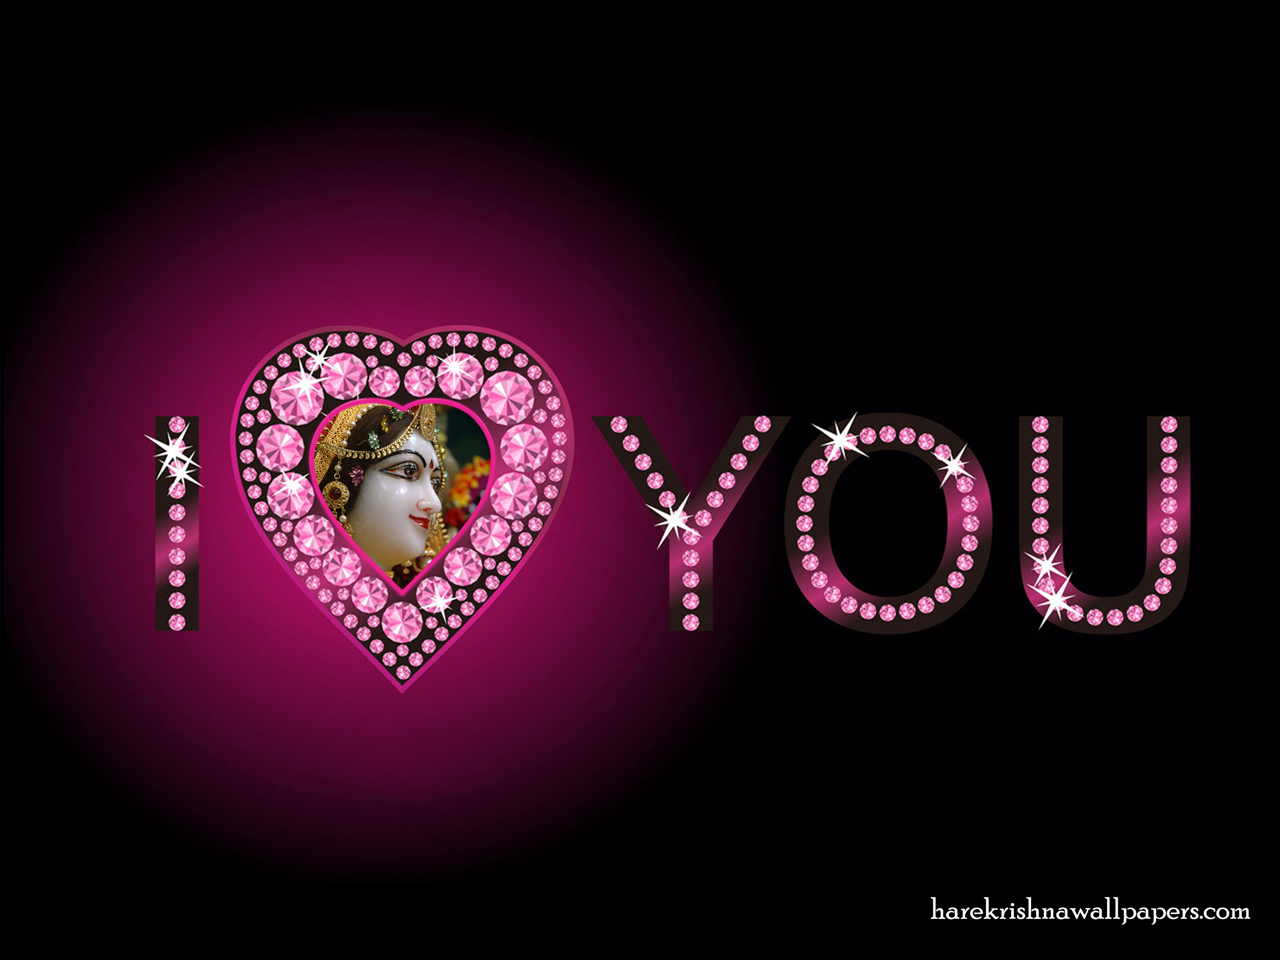 I Love You Radharani Wallpaper (011) Size 1280x960 Download